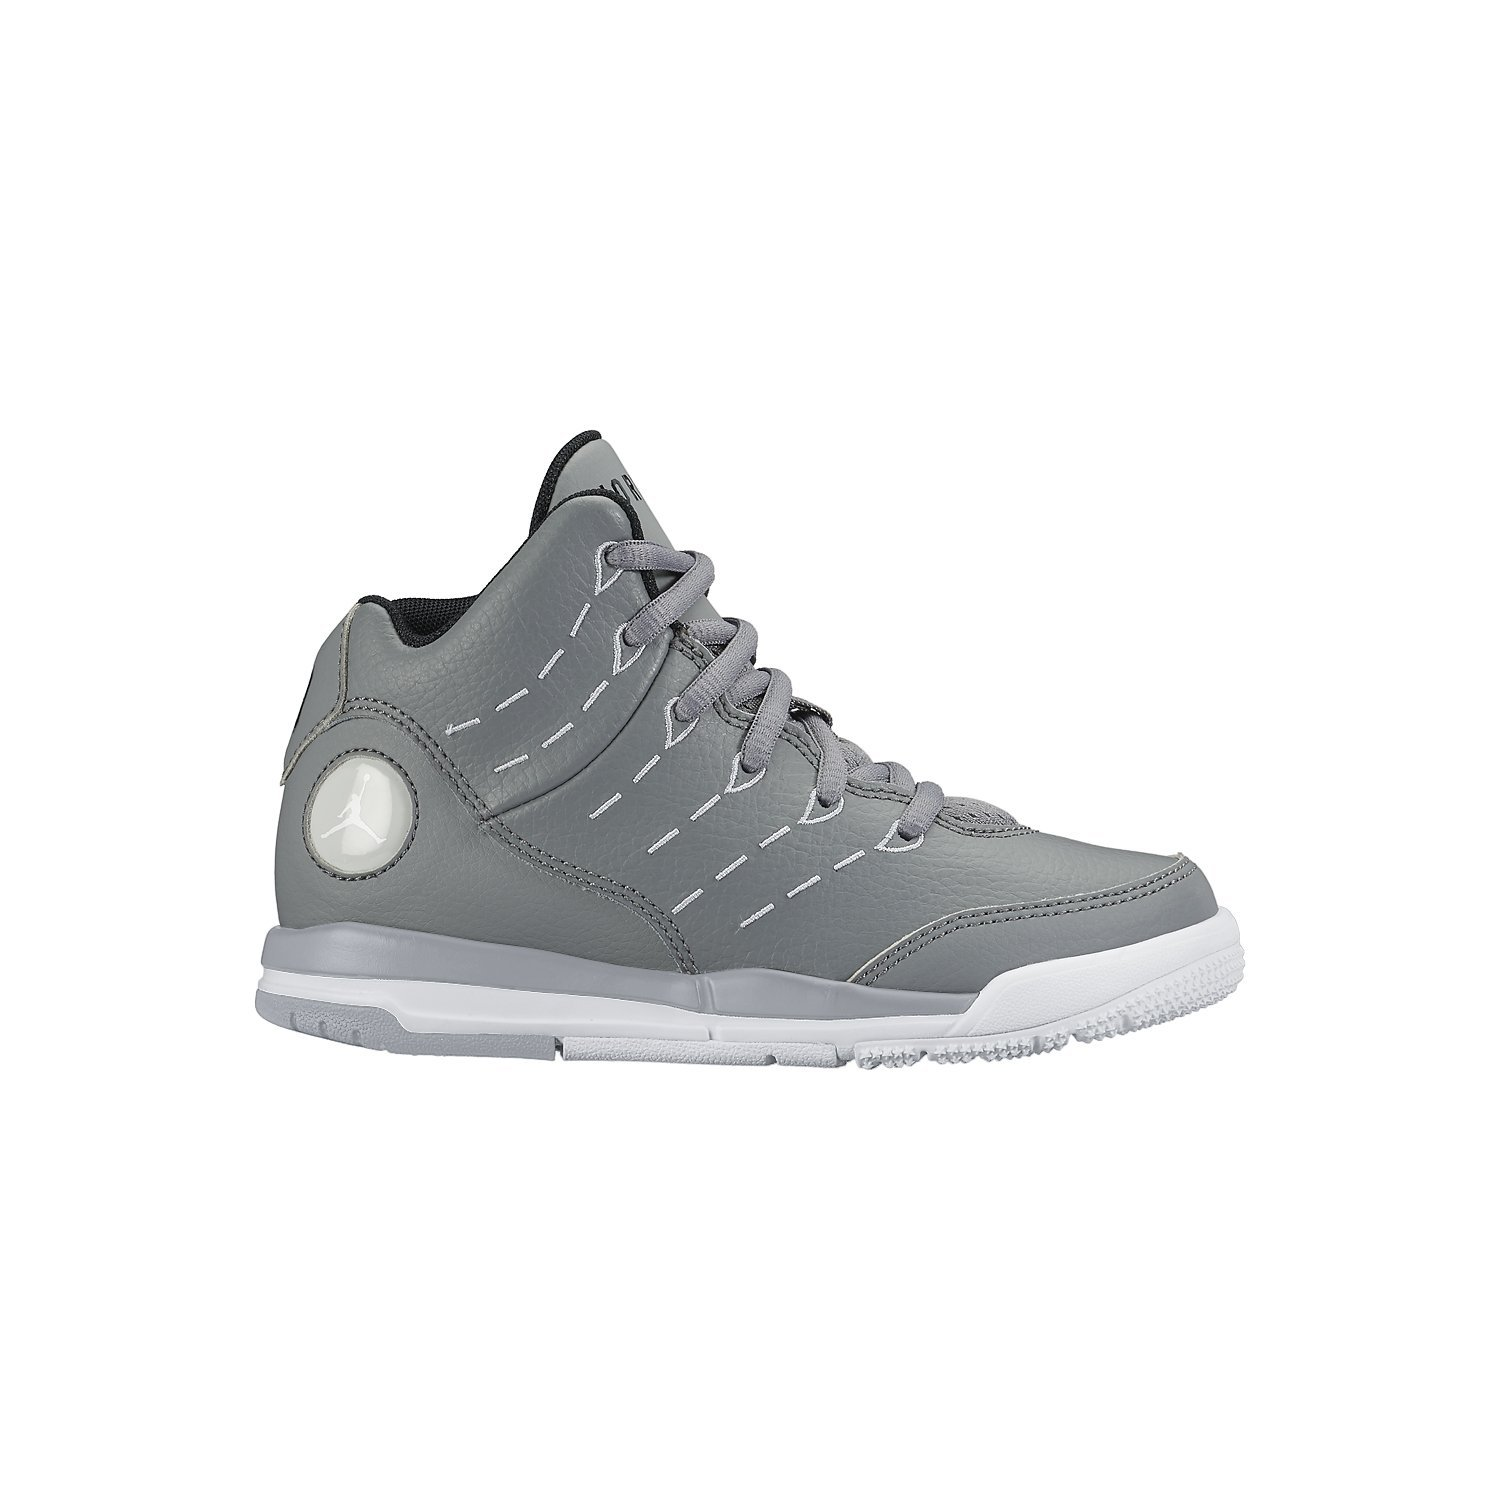 297e770c203d Get Quotations · Nike Boy s Air Jordan Flight Tradition Basketball Shoe  Cool Grey Wolf Grey White 2.5